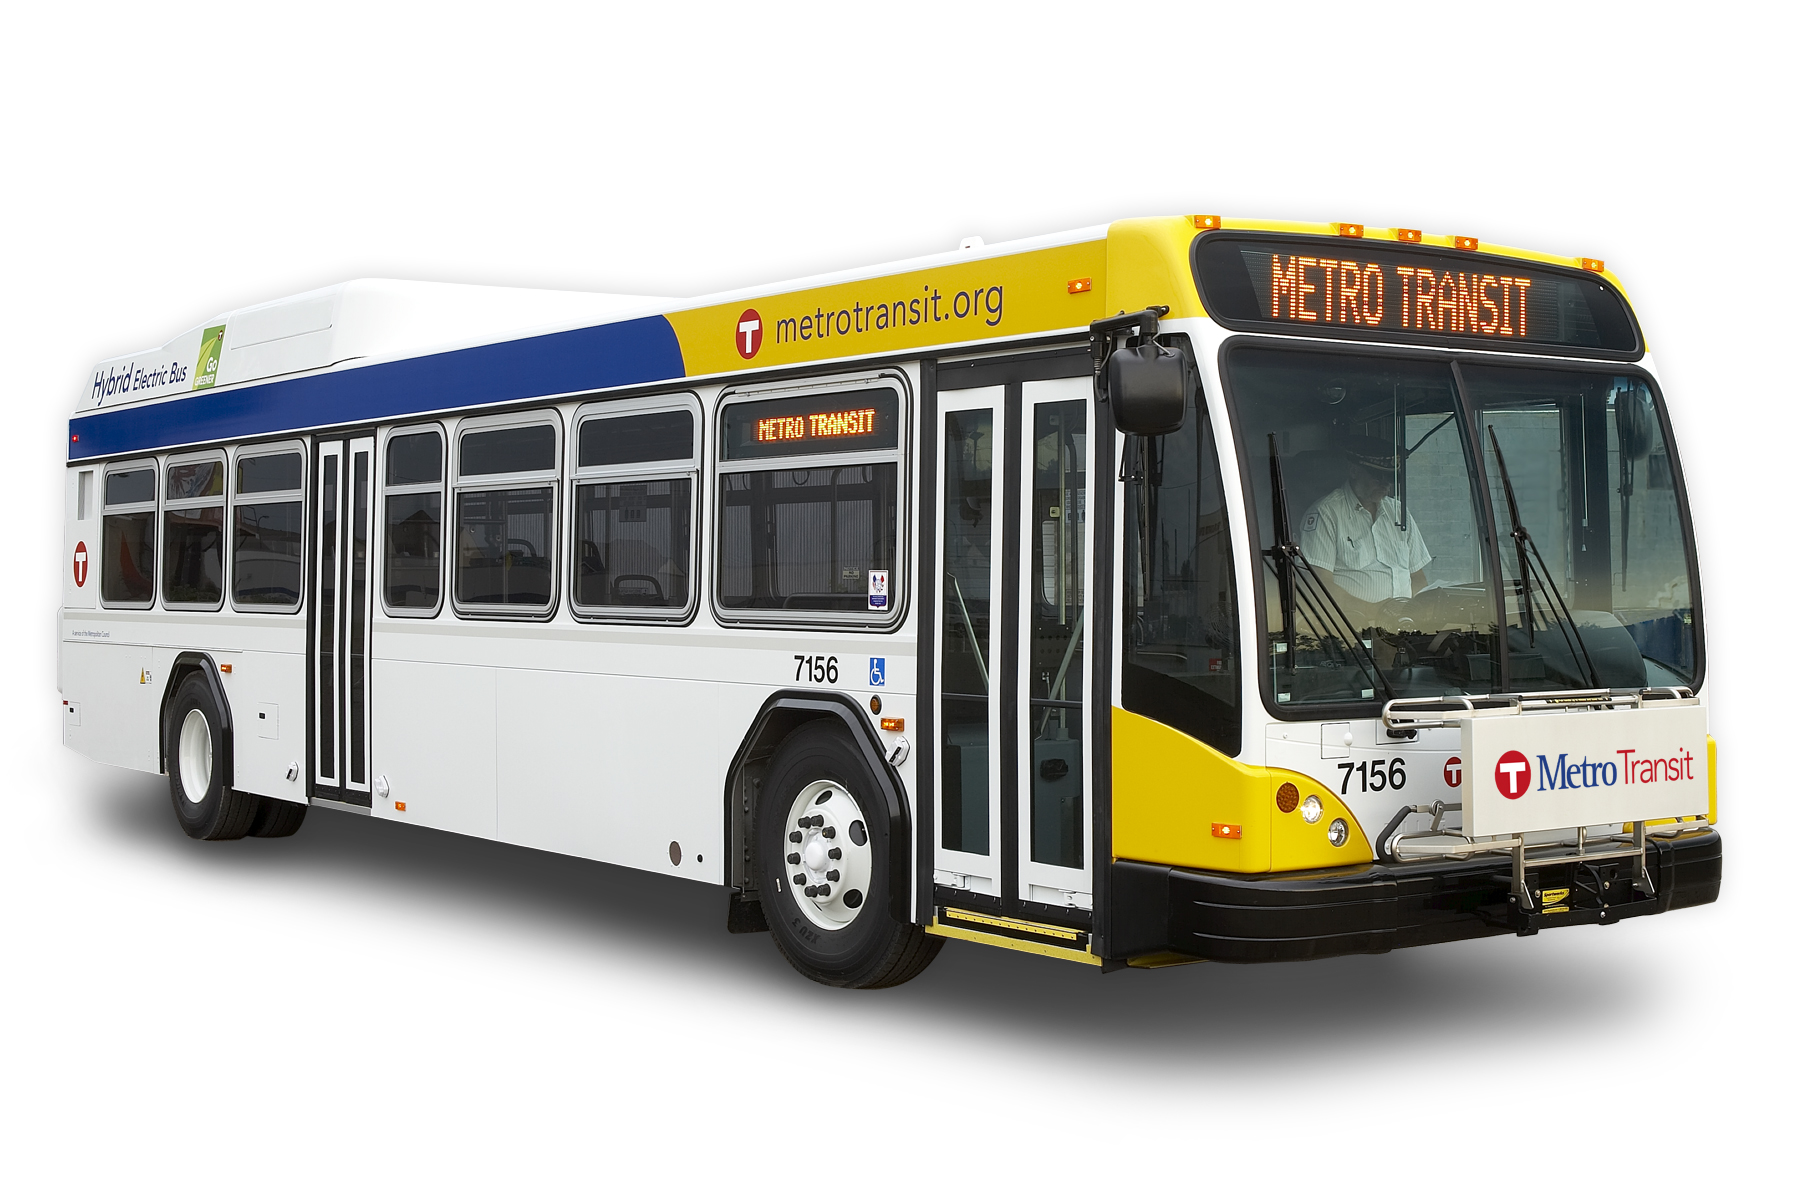 Lego Shops Adelaide Metro Transit Introduces Hybrid Electric Buses To East